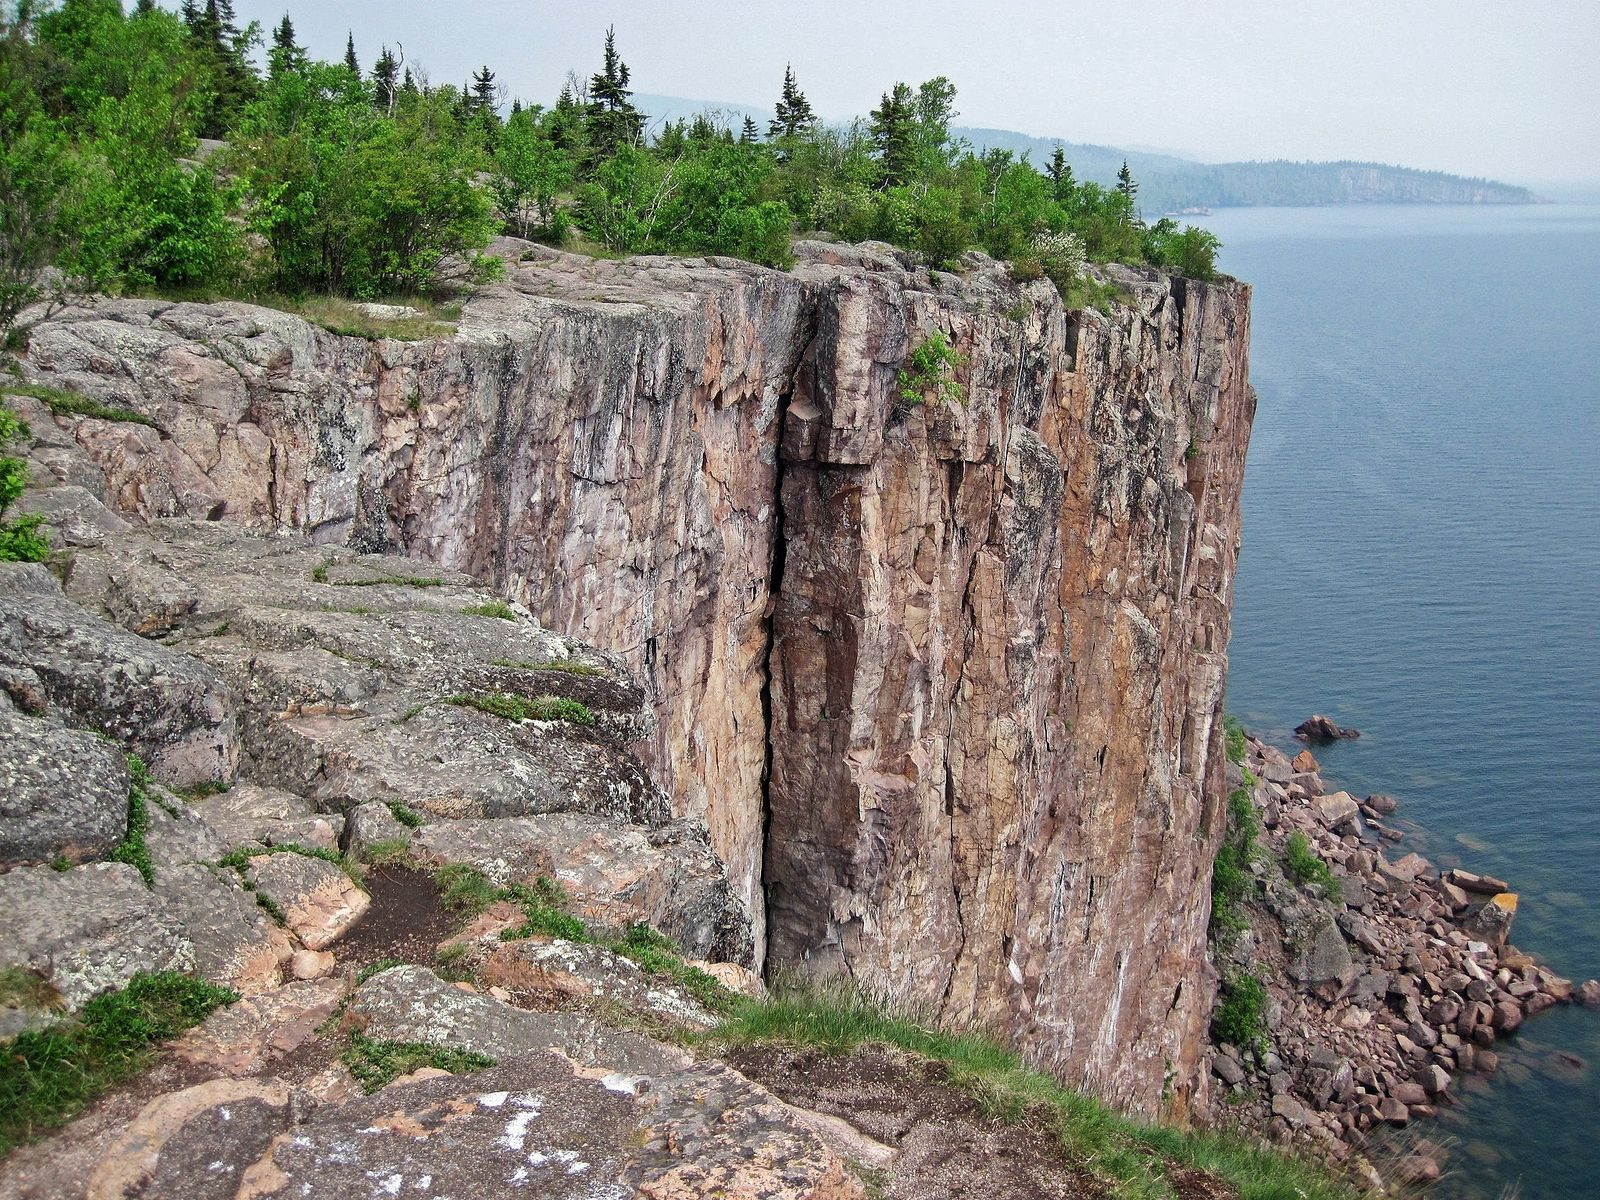 Orgues de rhyolite à Palisade Head - Lac Supérieur , groupe volcanique de la rive nord - photo James ST John / Flickr